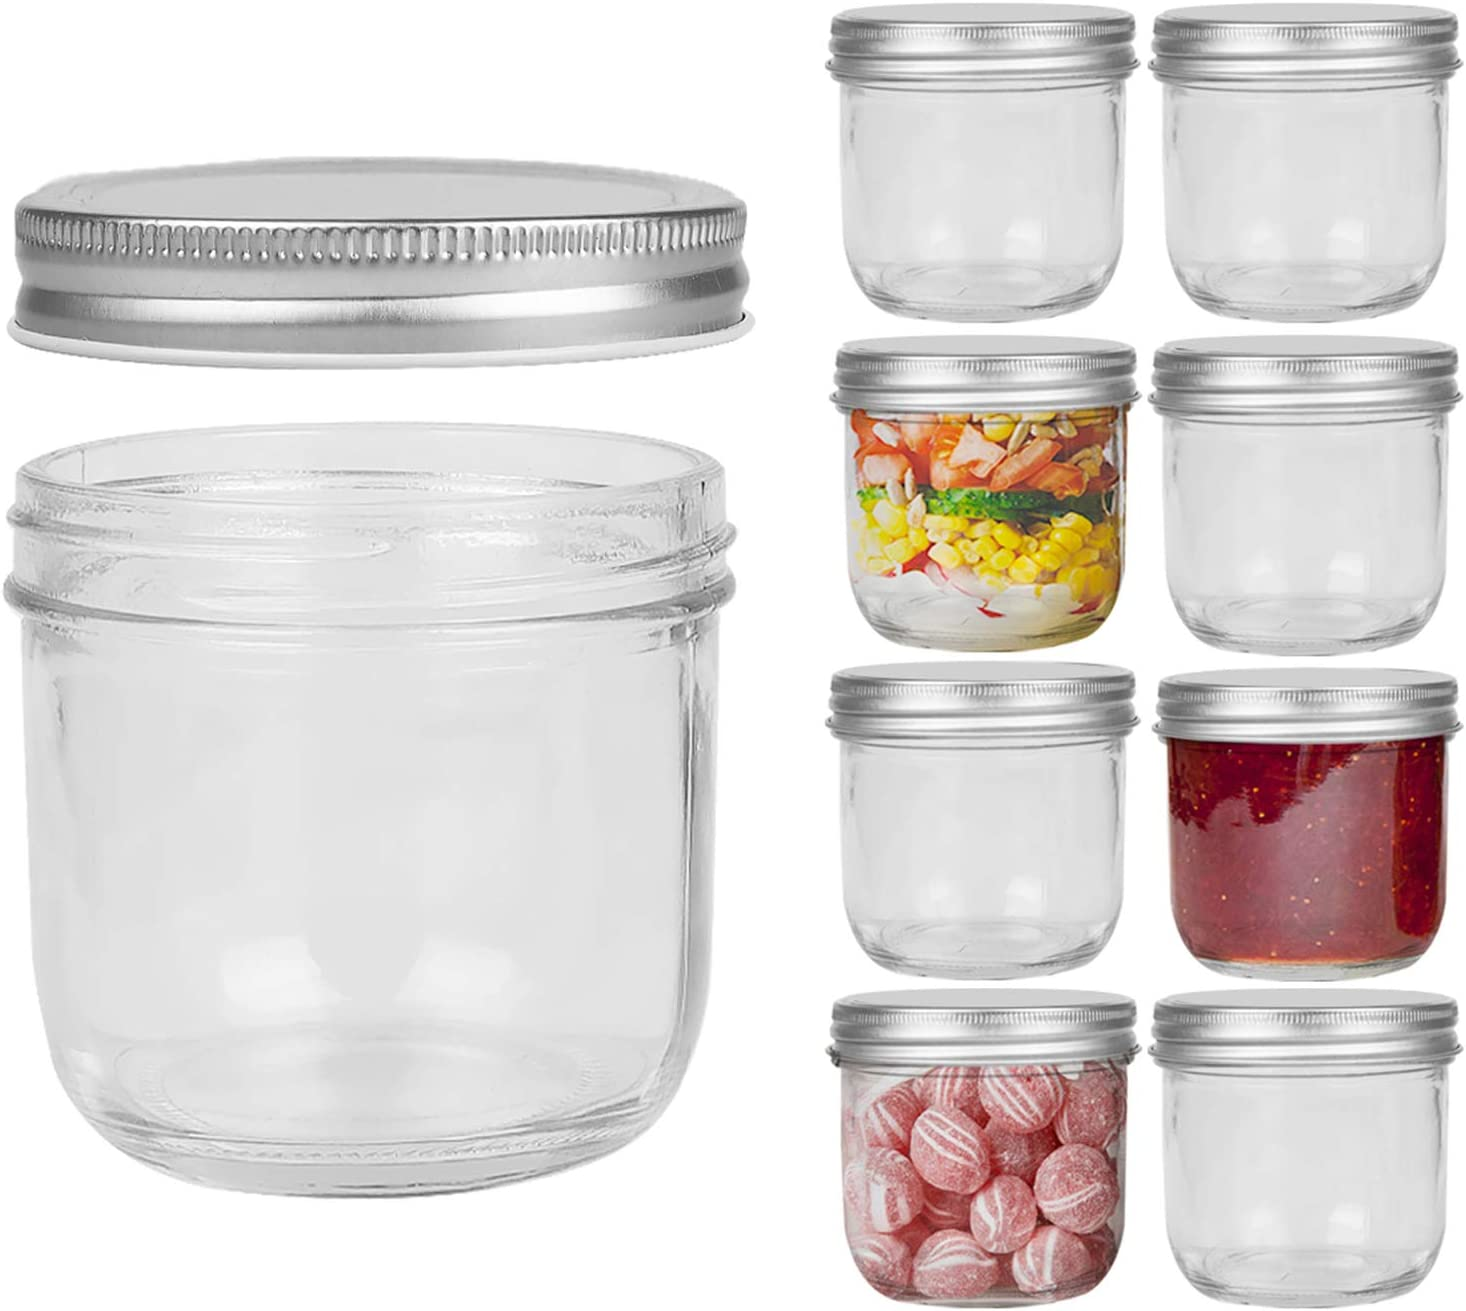 FRUITEAM 8 oz Mason Jars with Silver Metal Airtight Lids -Set of 8, Transparent Glass Canning Jar Ideal for Jams, Jellies, Conserves, Preserves, Fruit Syrups, Chutneys, and more Pizza Sauce